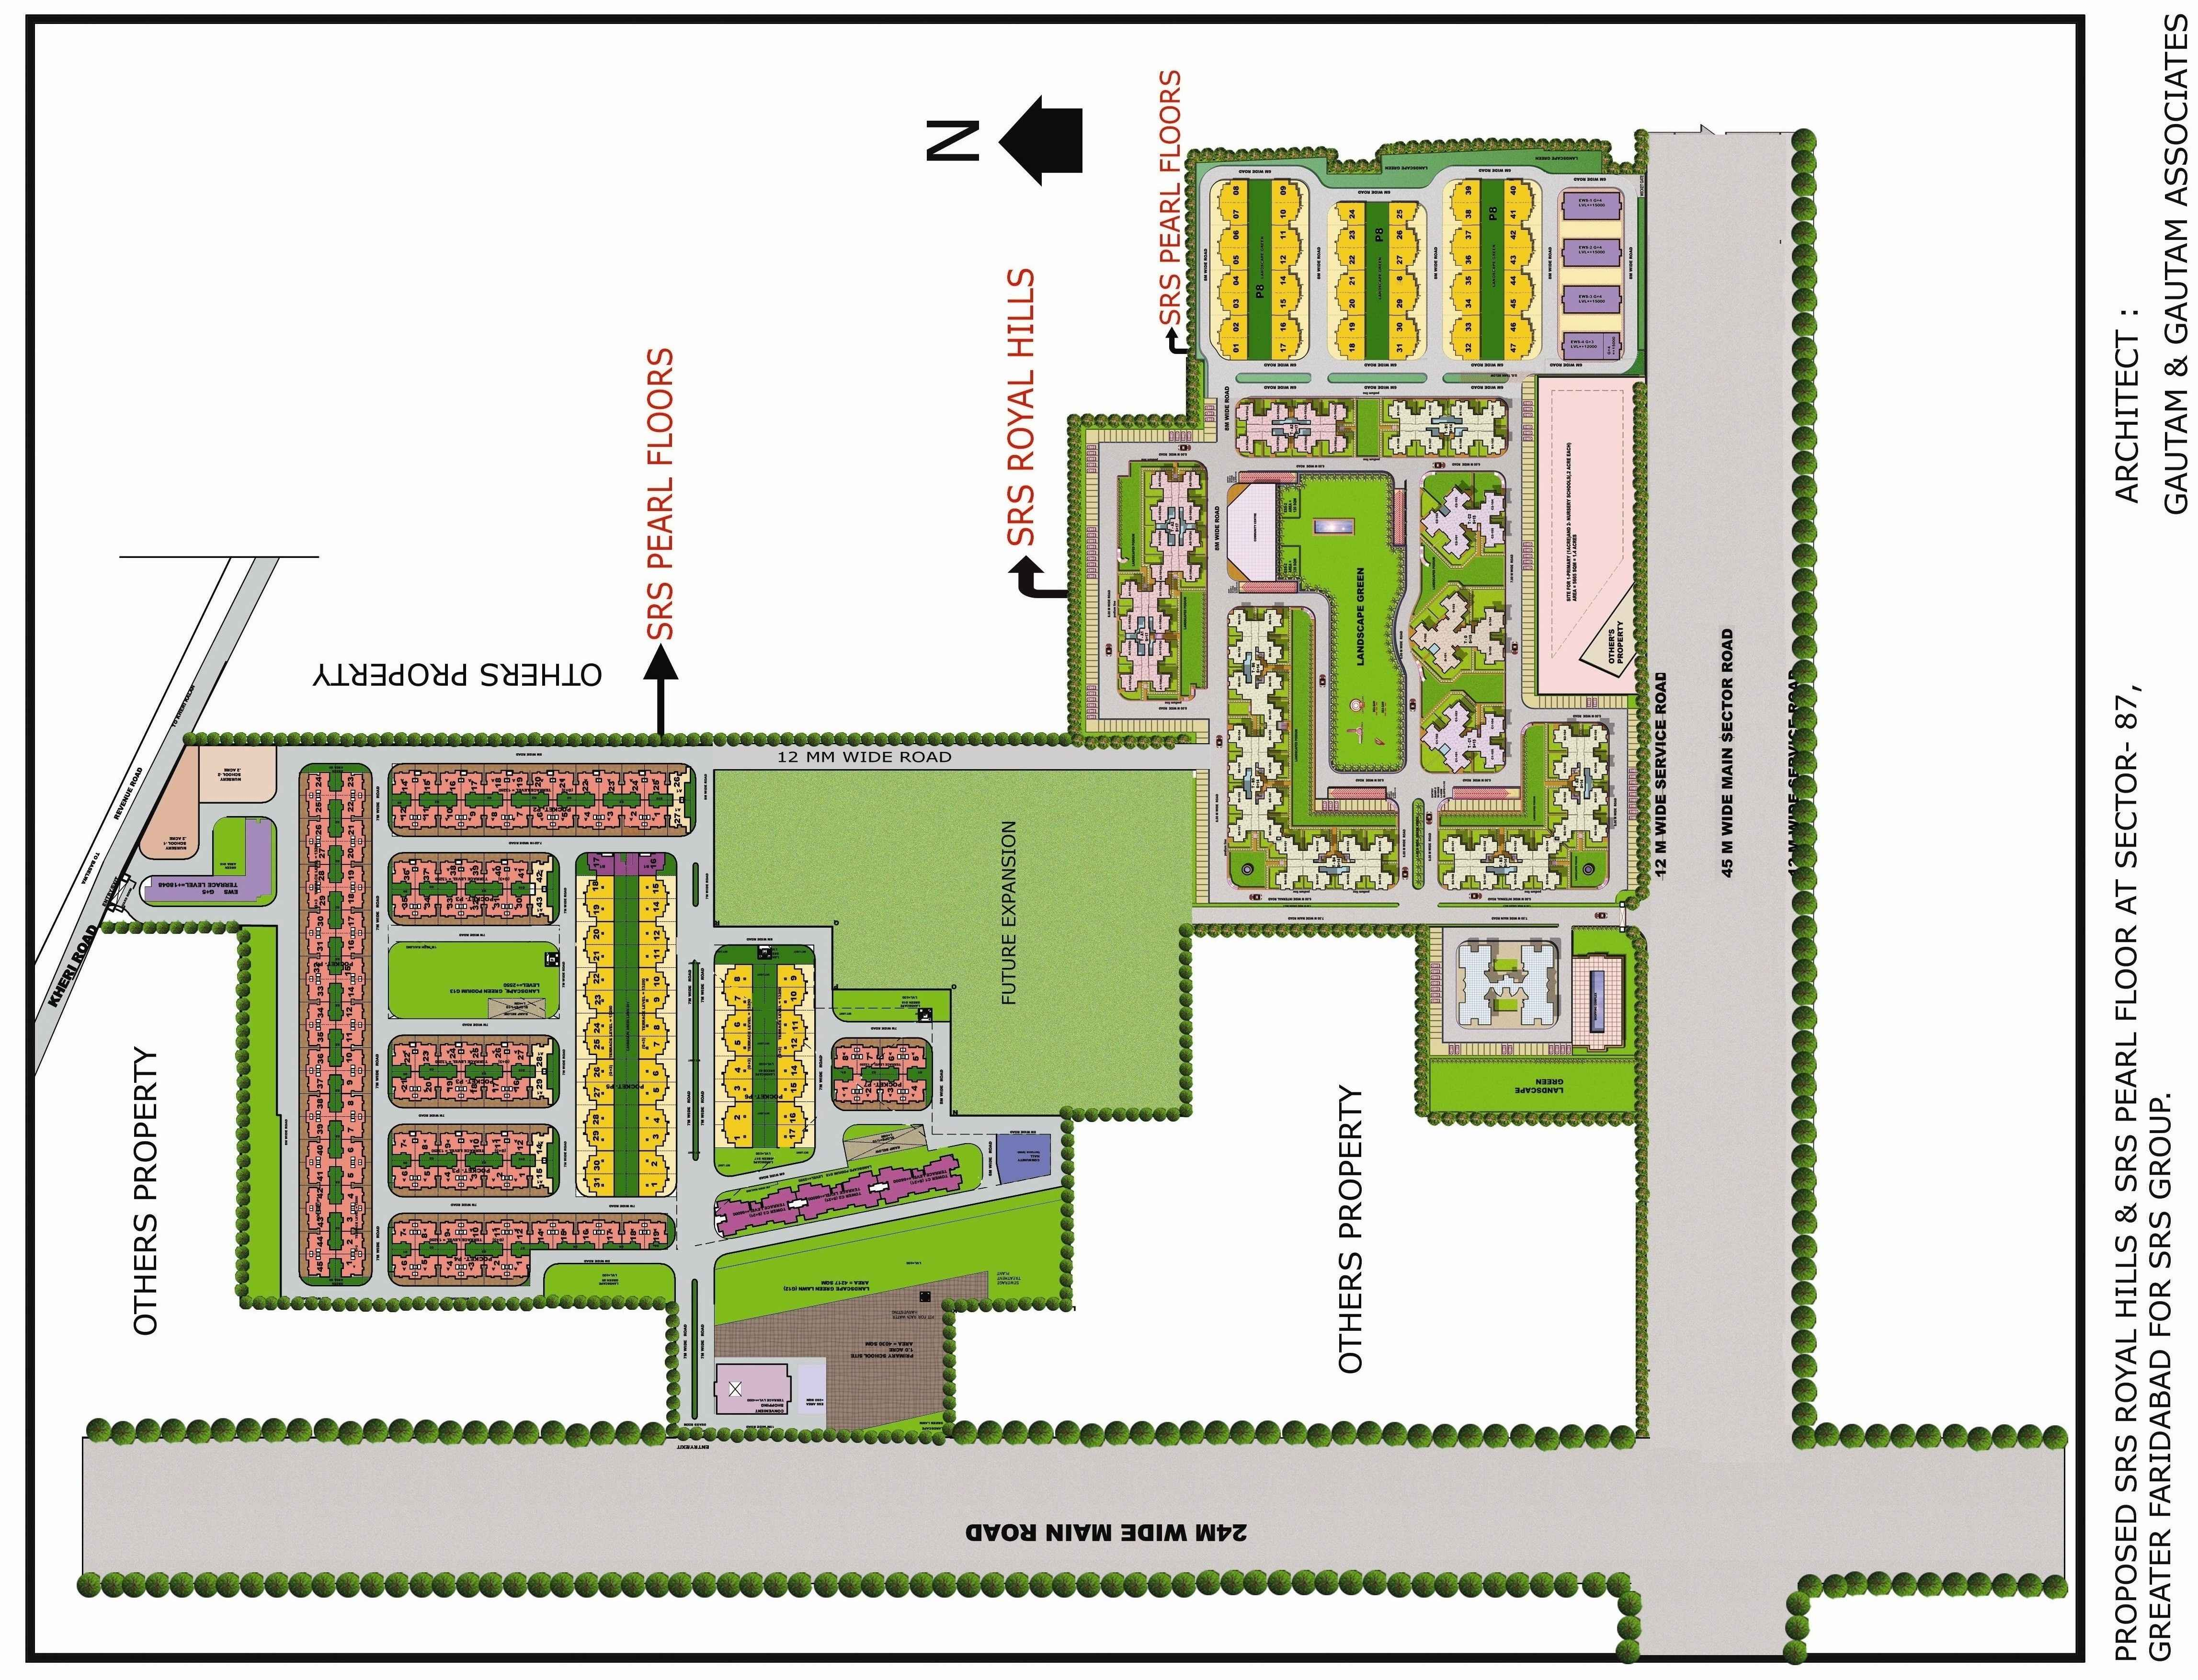 Layout map of srs pearl floors faridabad